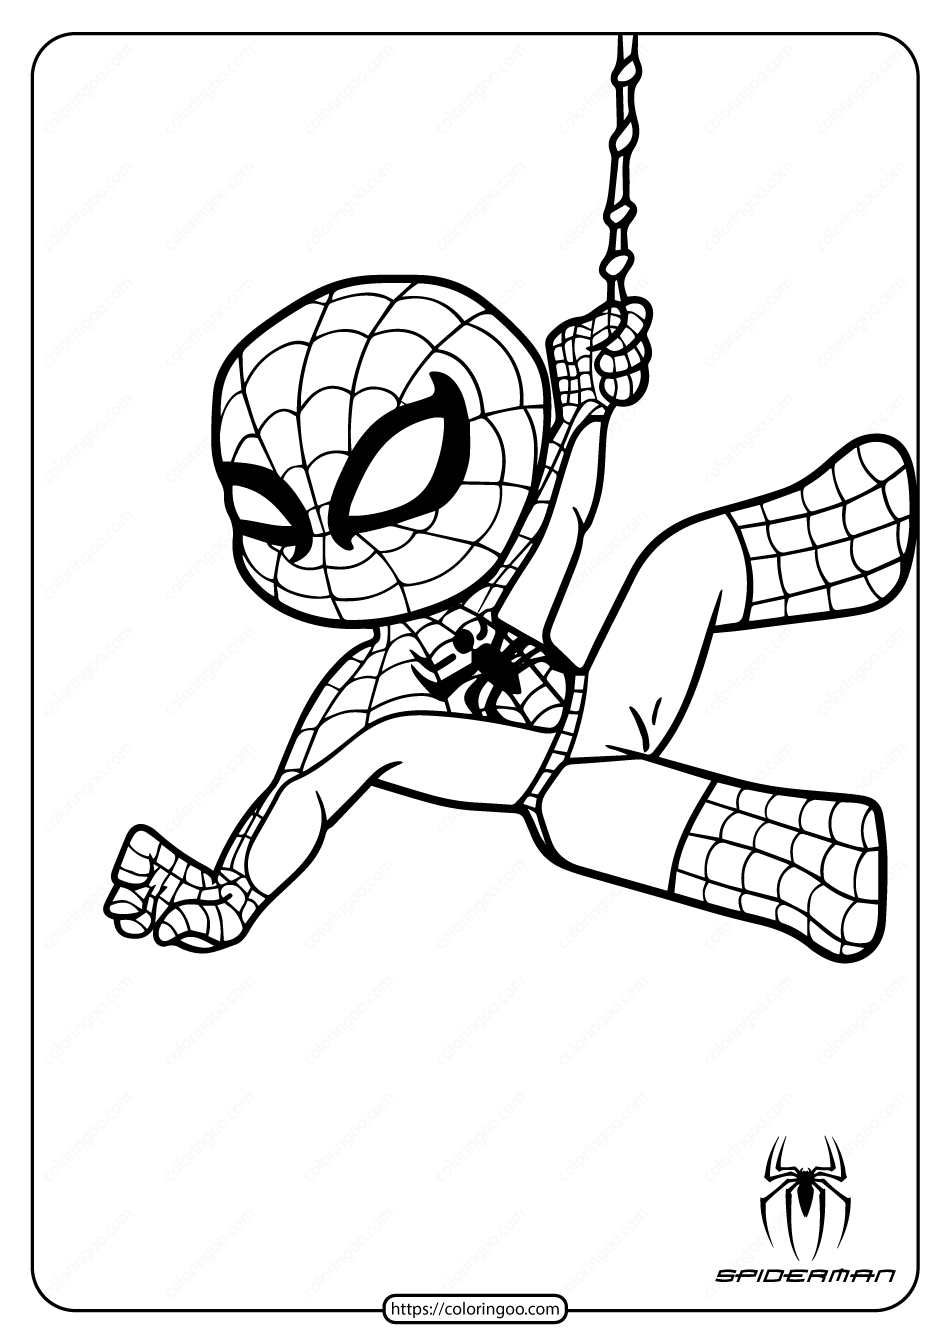 Cute Spiderman Coloring Pages For Kids Spiderman Coloring Spider Coloring Page Superhero Coloring Pages